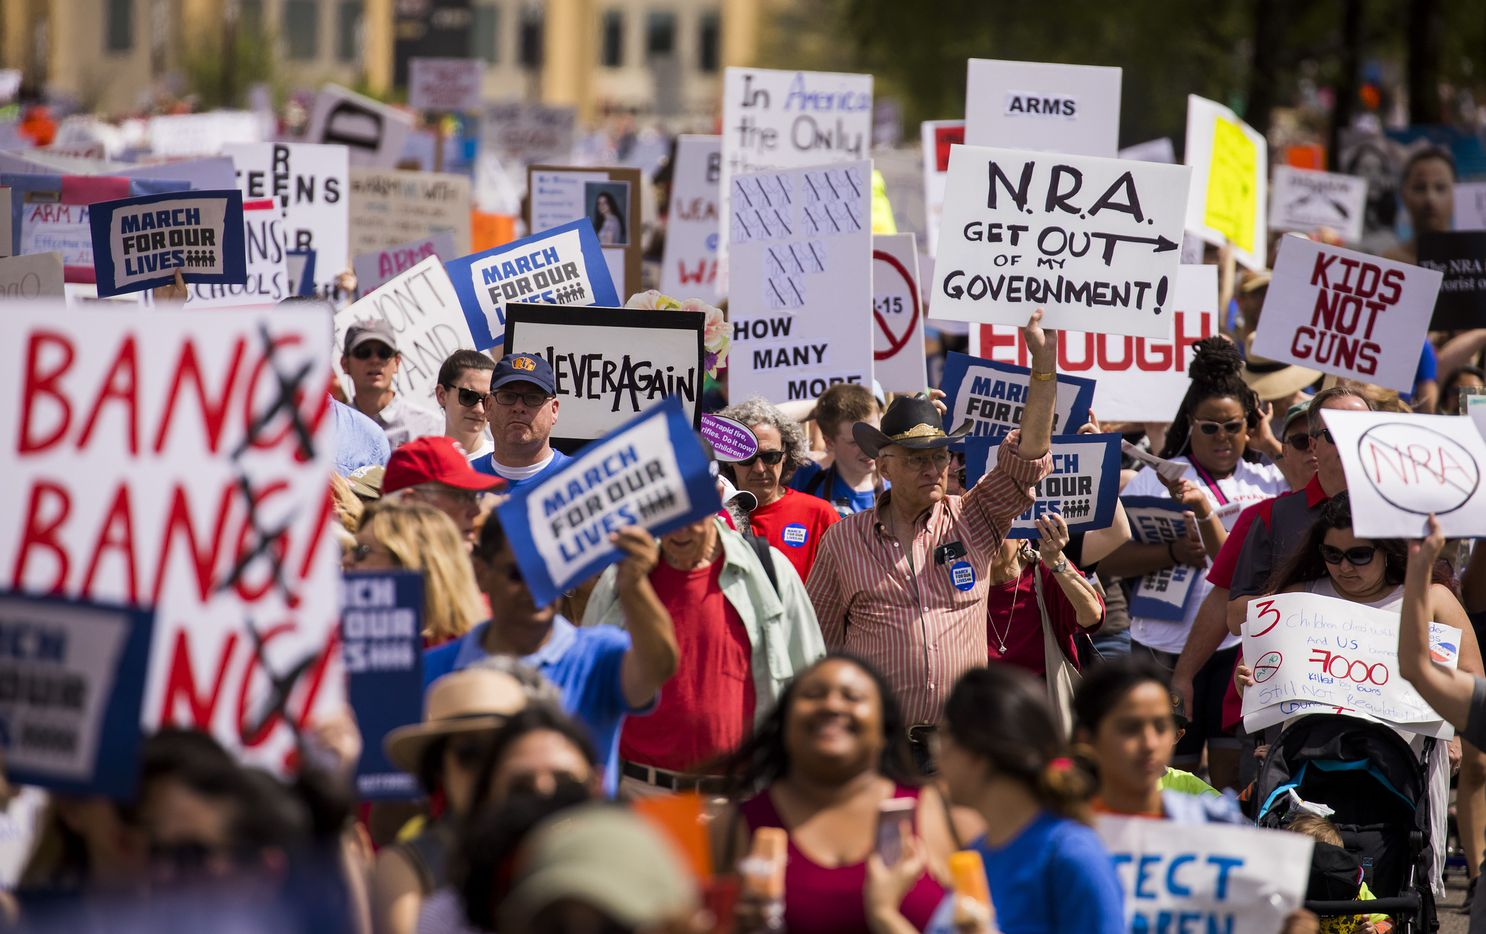 Demonstrators march down Young Street near City Hall during a rally and march in support of gun safety laws.